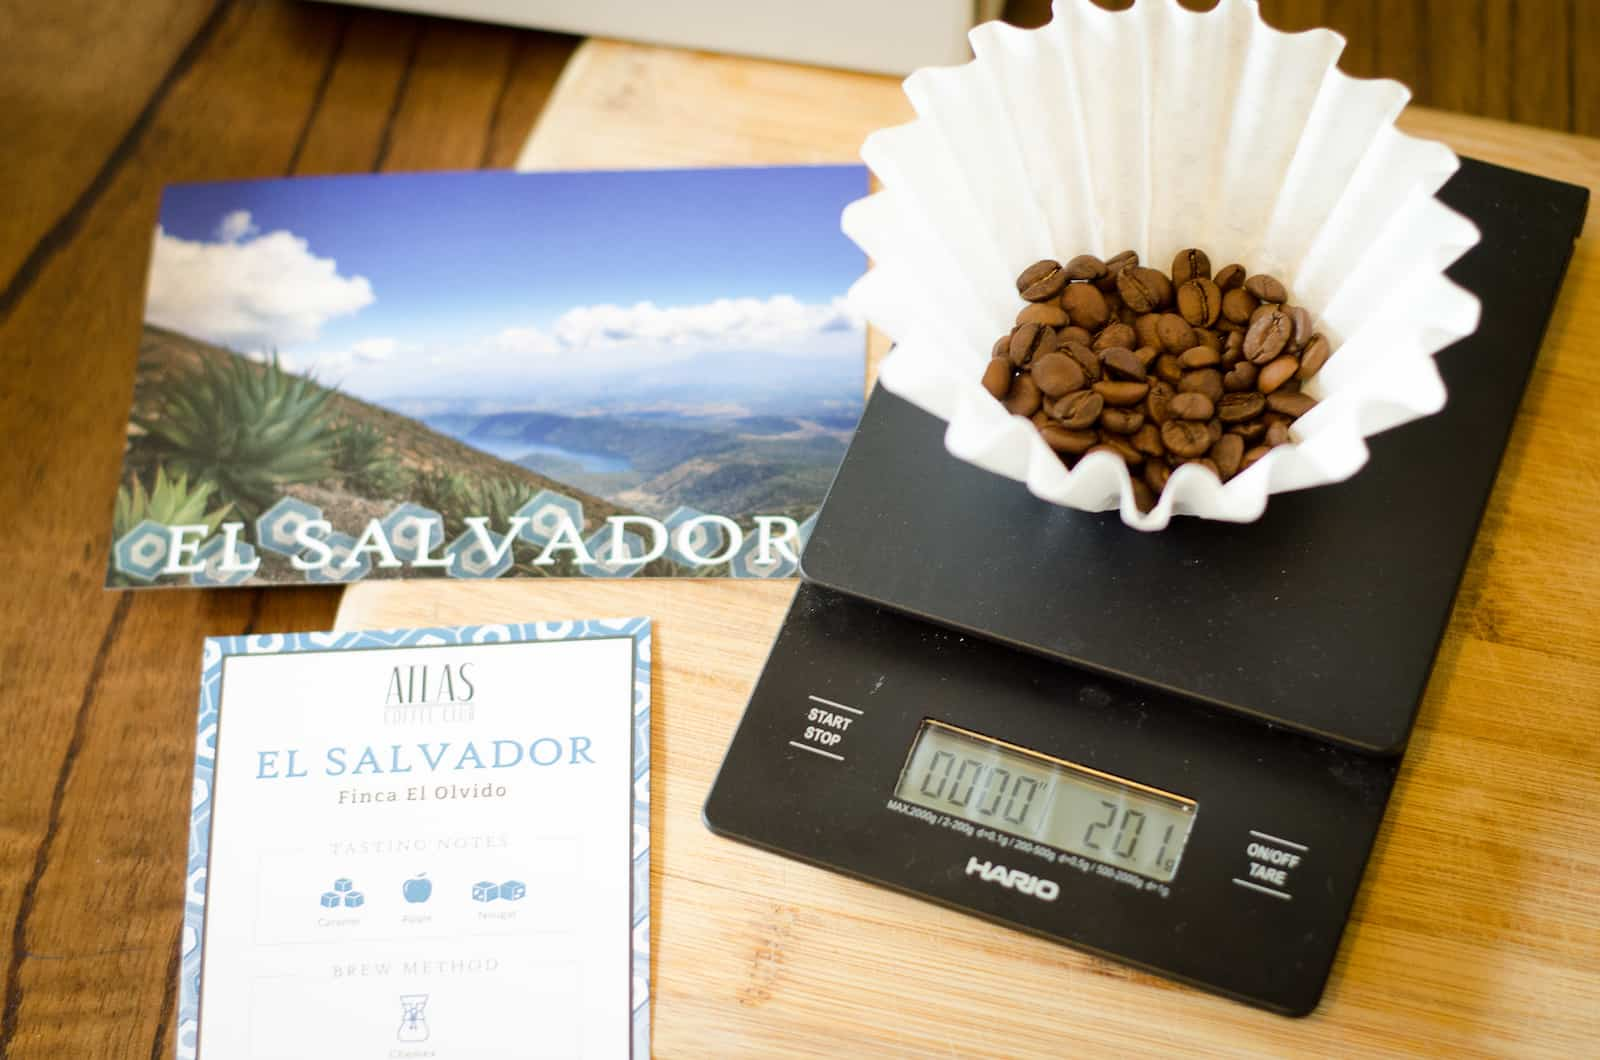 using a scale on atlas coffee club coffee beans